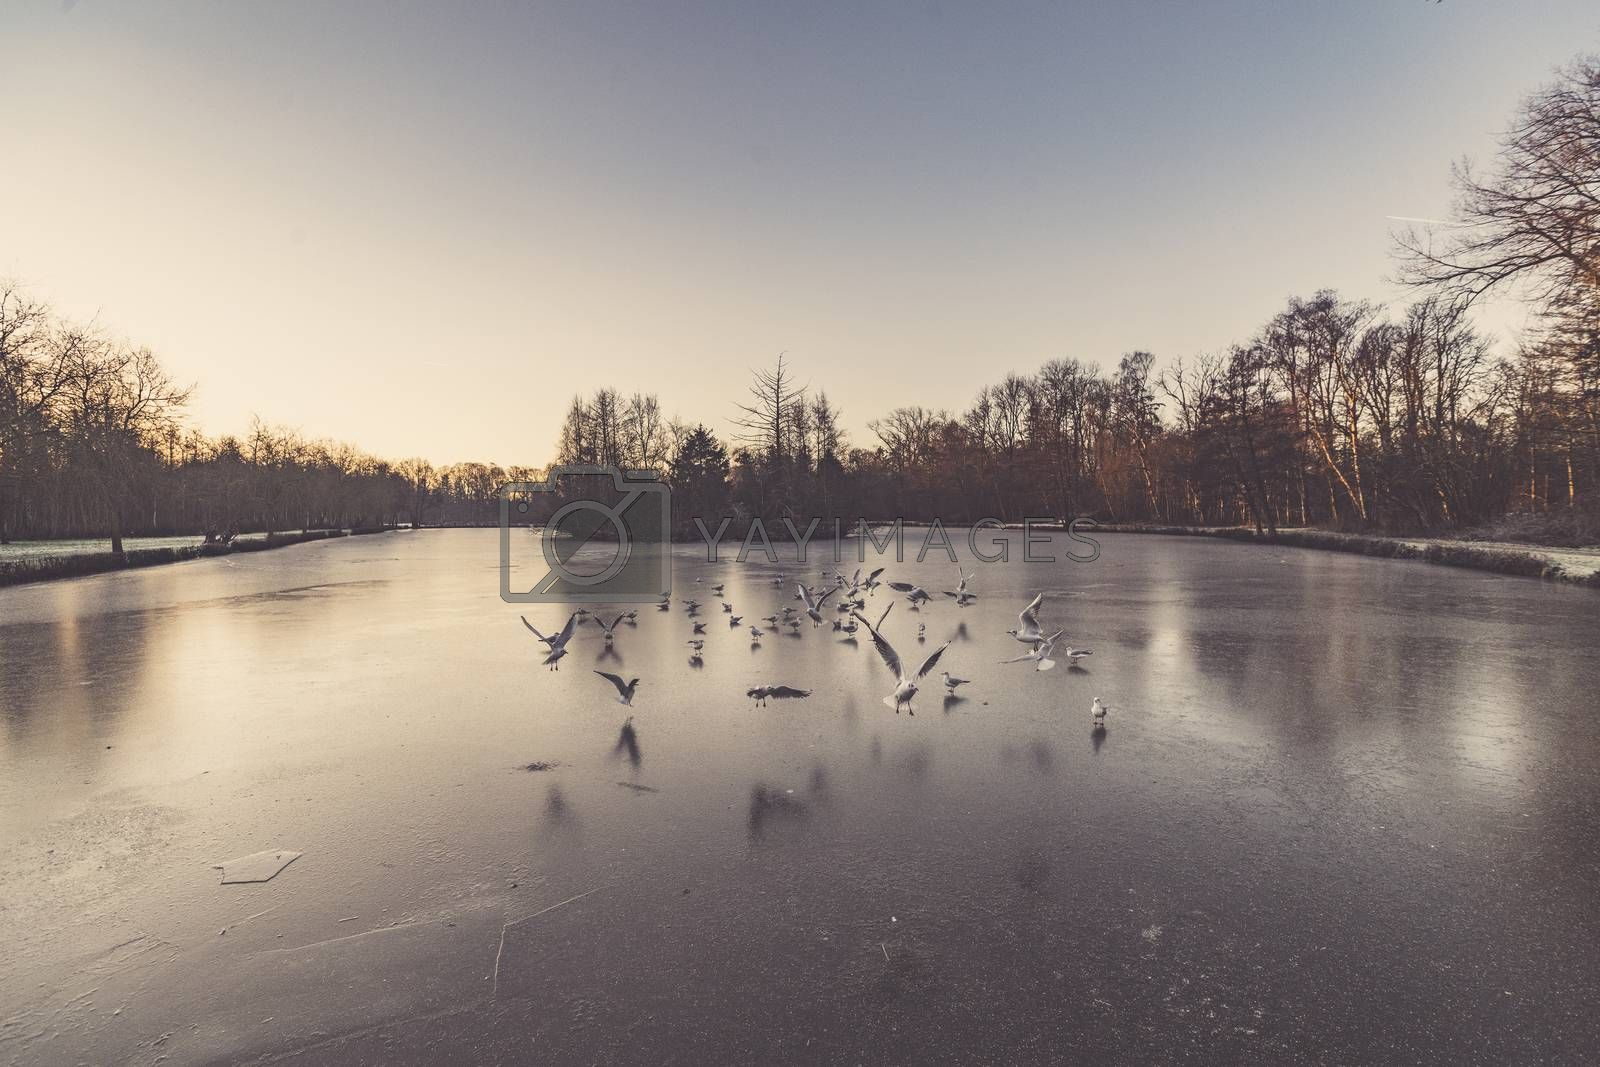 Gulls flying over a frozen lake in the winter in the early morning sunrise with ice on the water